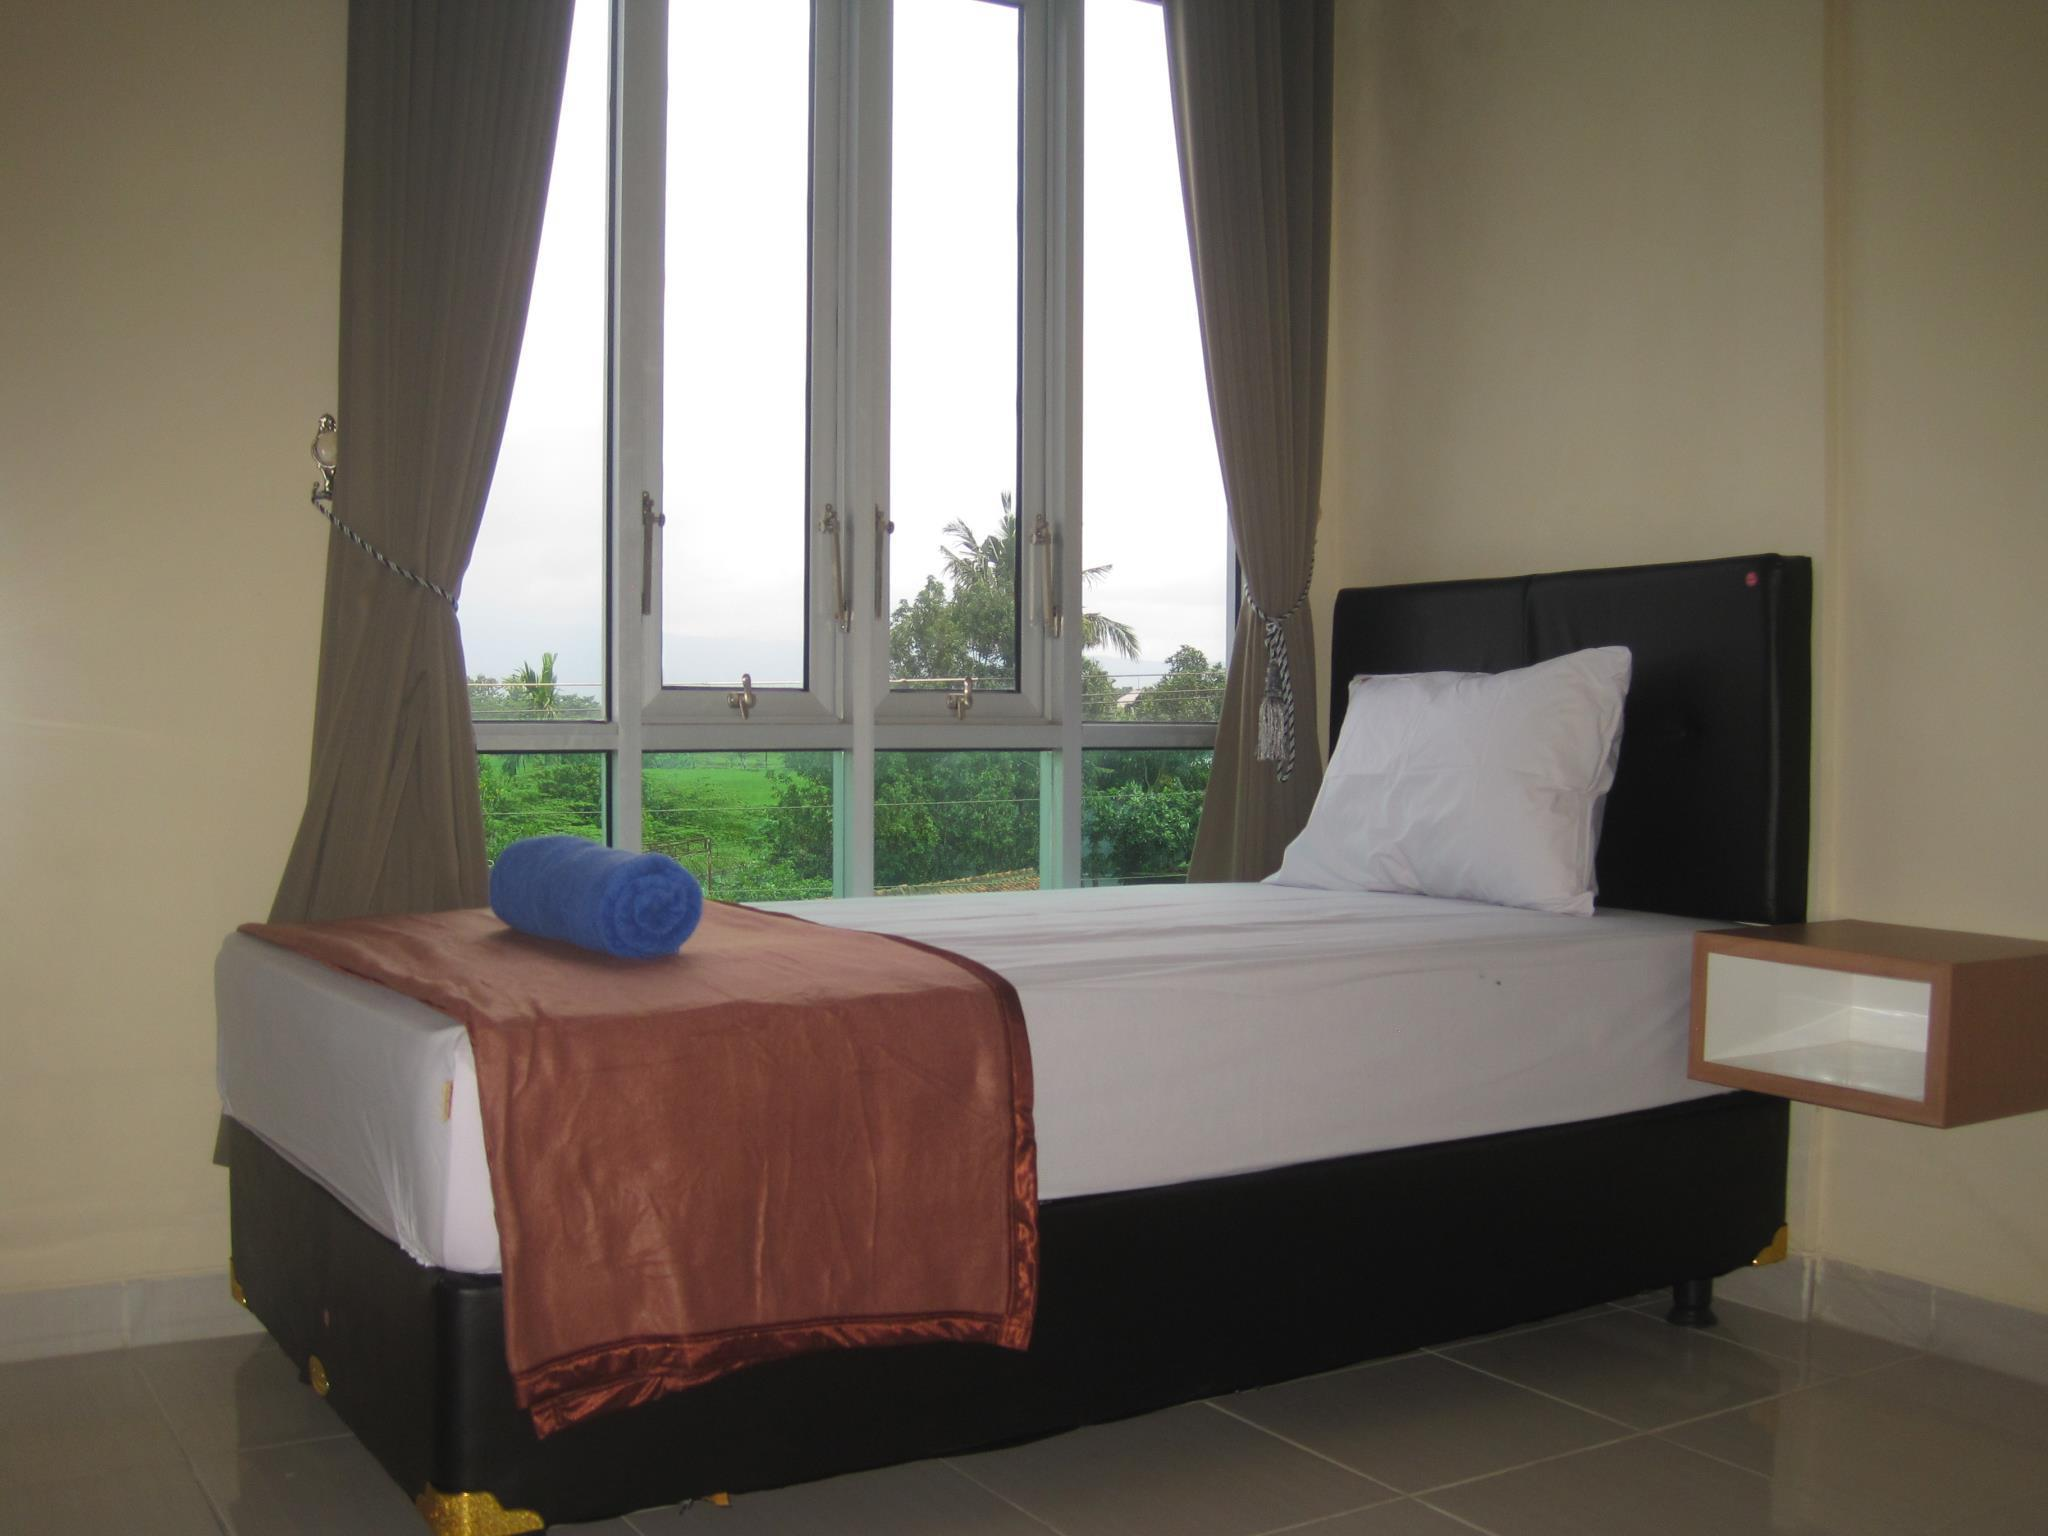 alamat hotel double tree kost guest house purwokerto rh huisee net